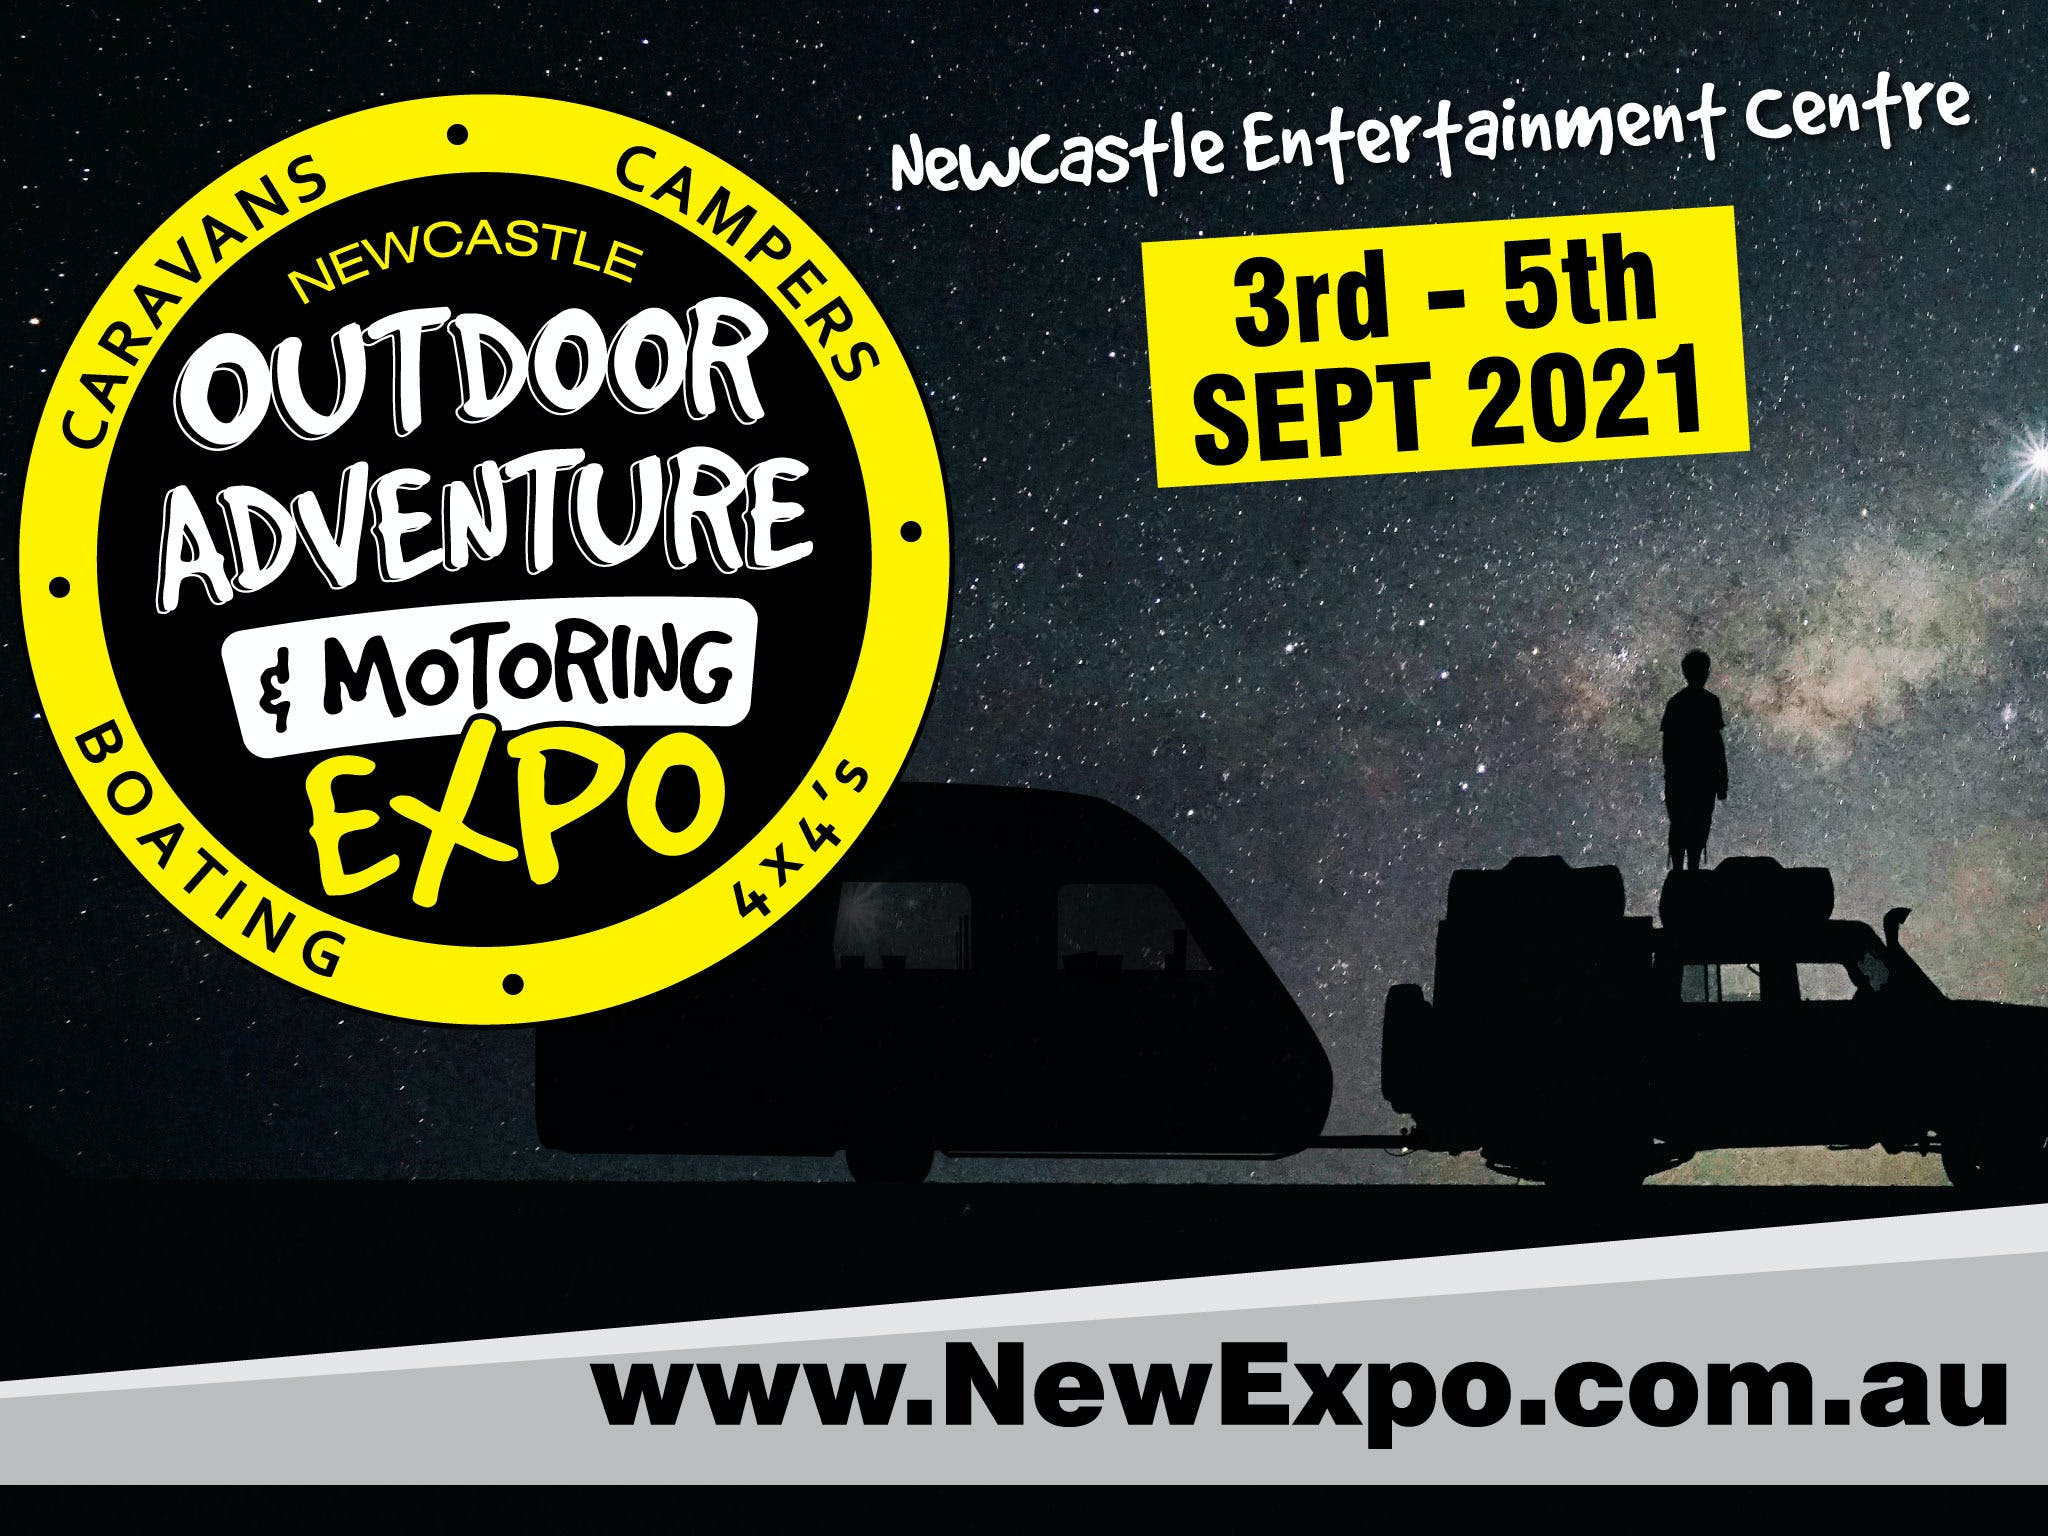 Newcastle Outdoor Adventure and Motoring Expo - Whitsundays Tourism